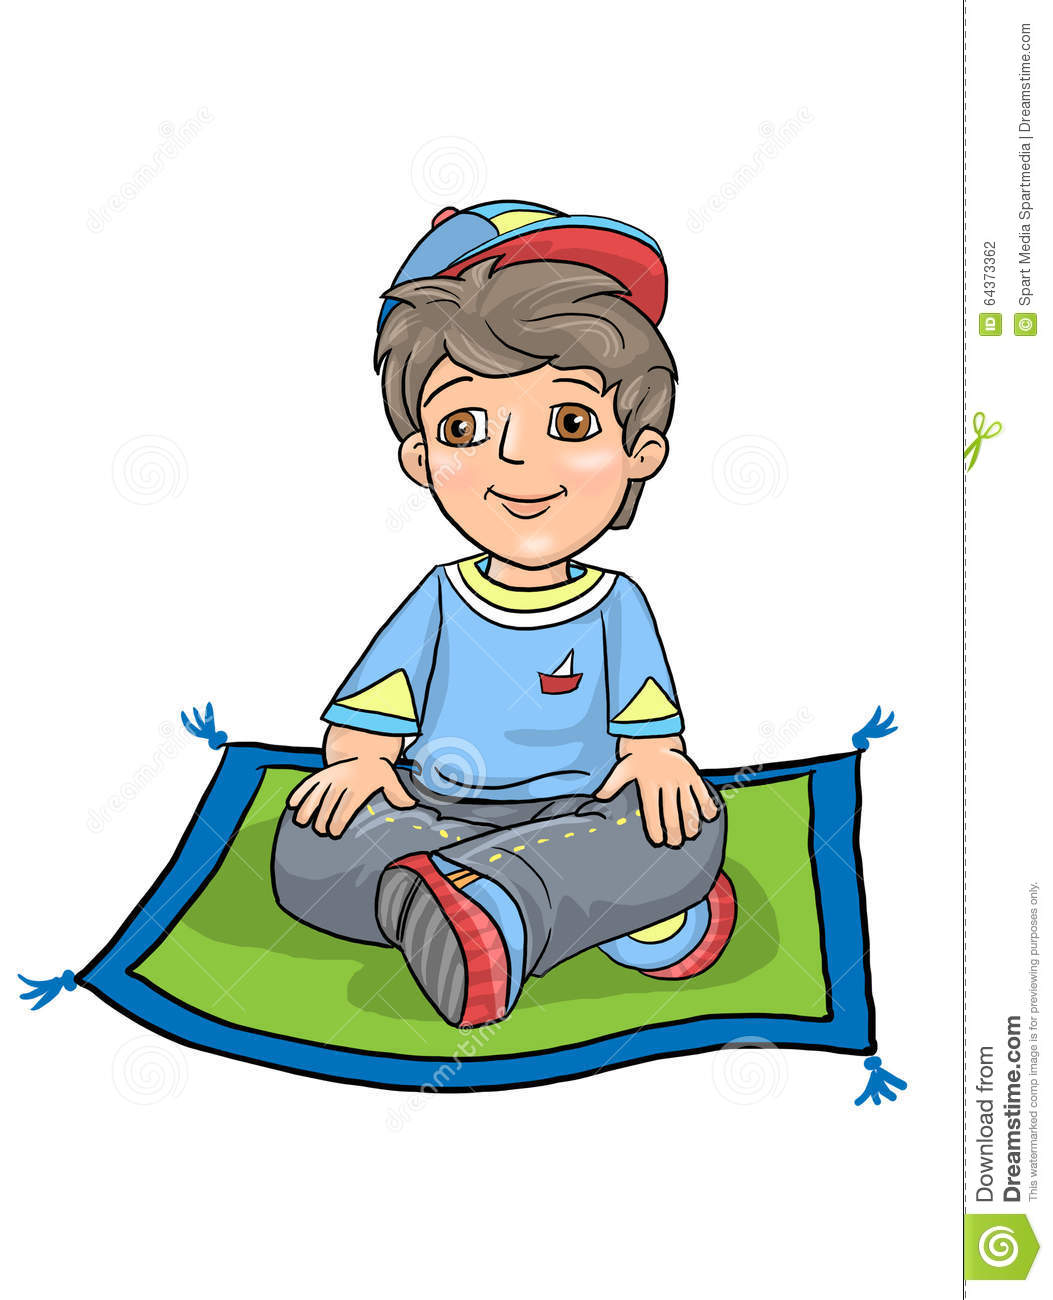 Boy Cross Legged Sitting Stock Illustration - Image: 64373362